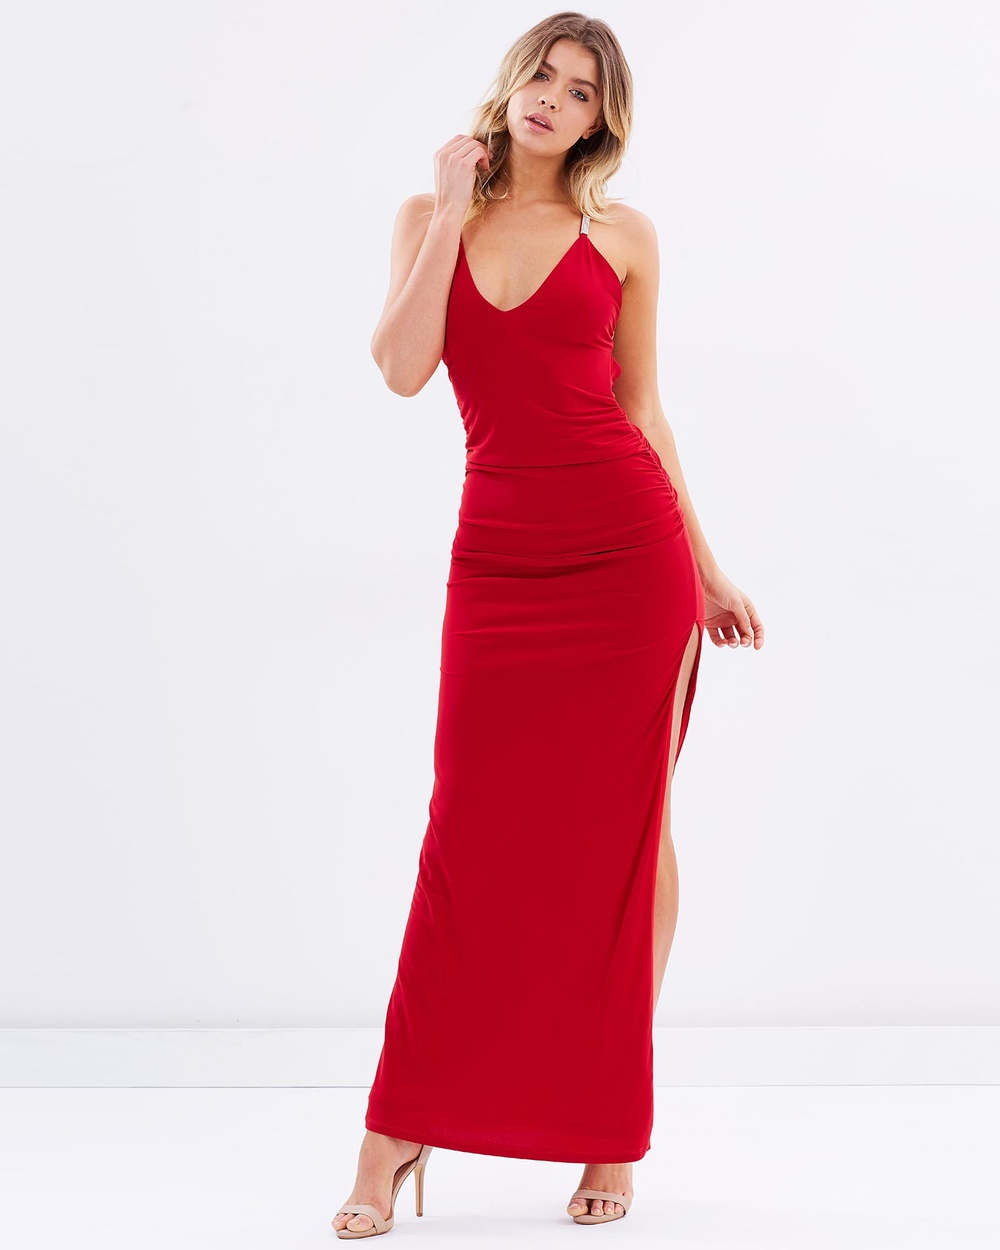 SKIVA Cross Strap Evening Dress Dresses Red Cross Strap Evening Dress